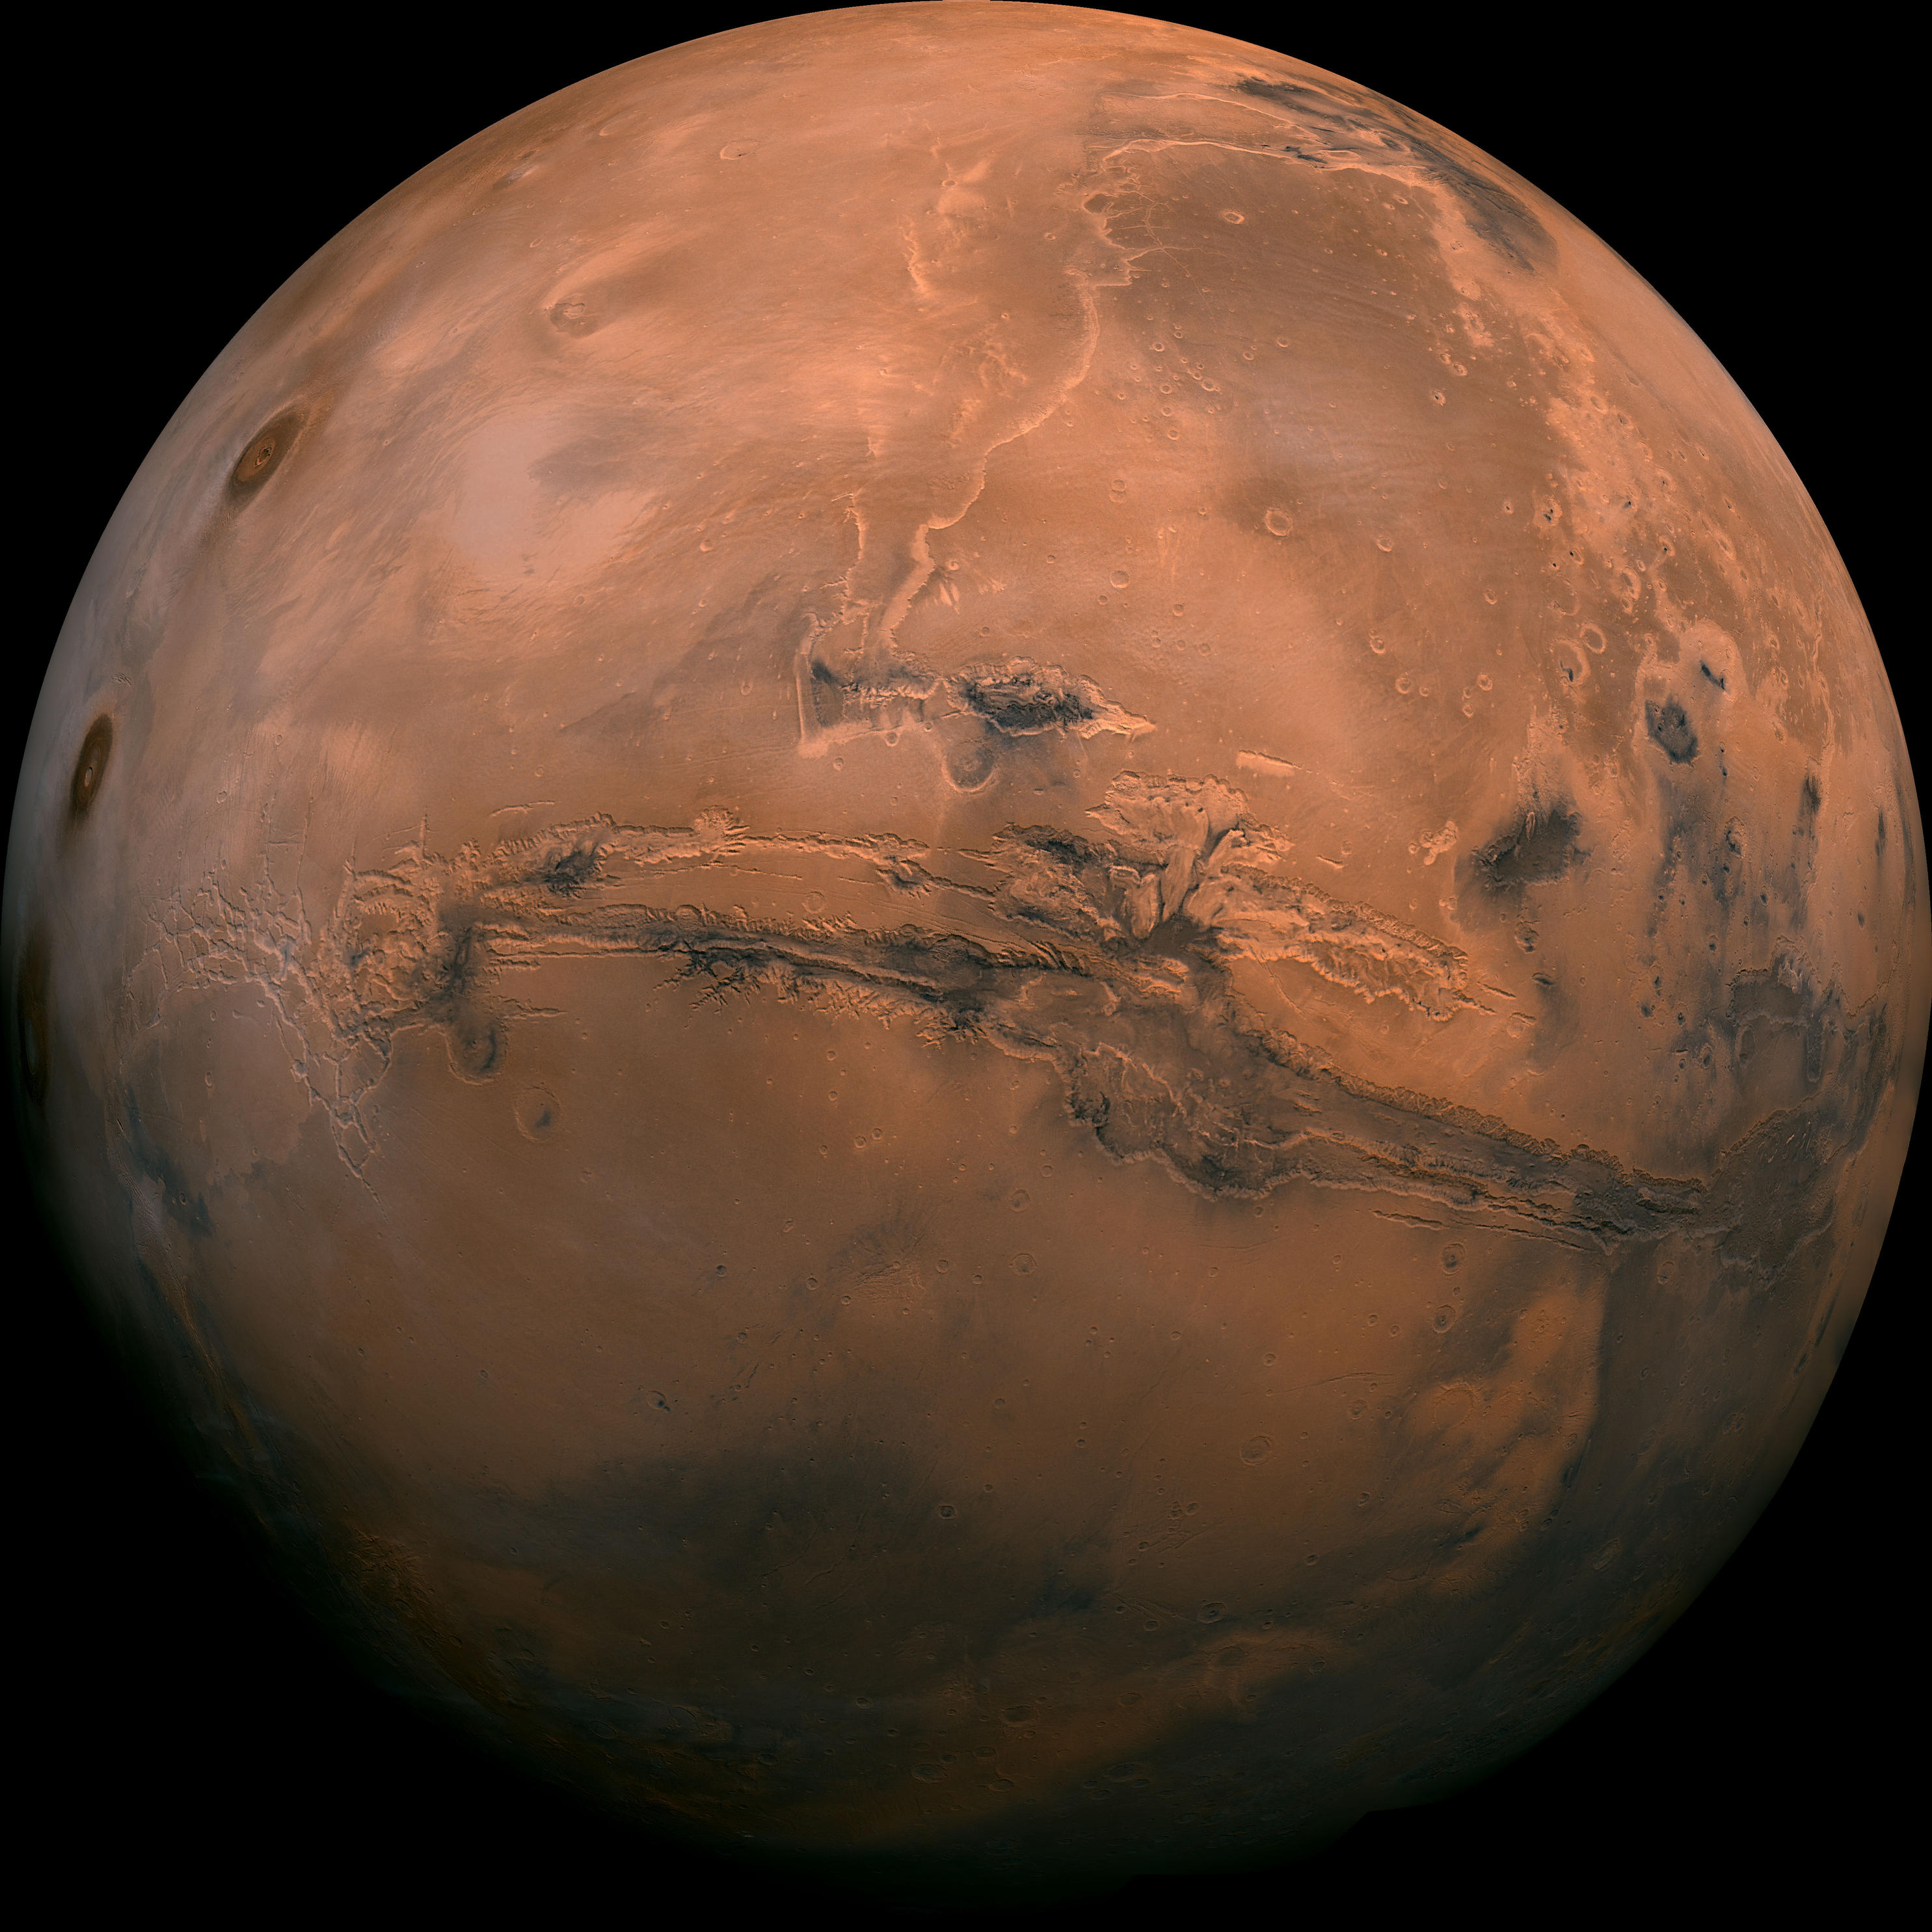 6453_mars-globe-valles-marineris-enhanced-full2